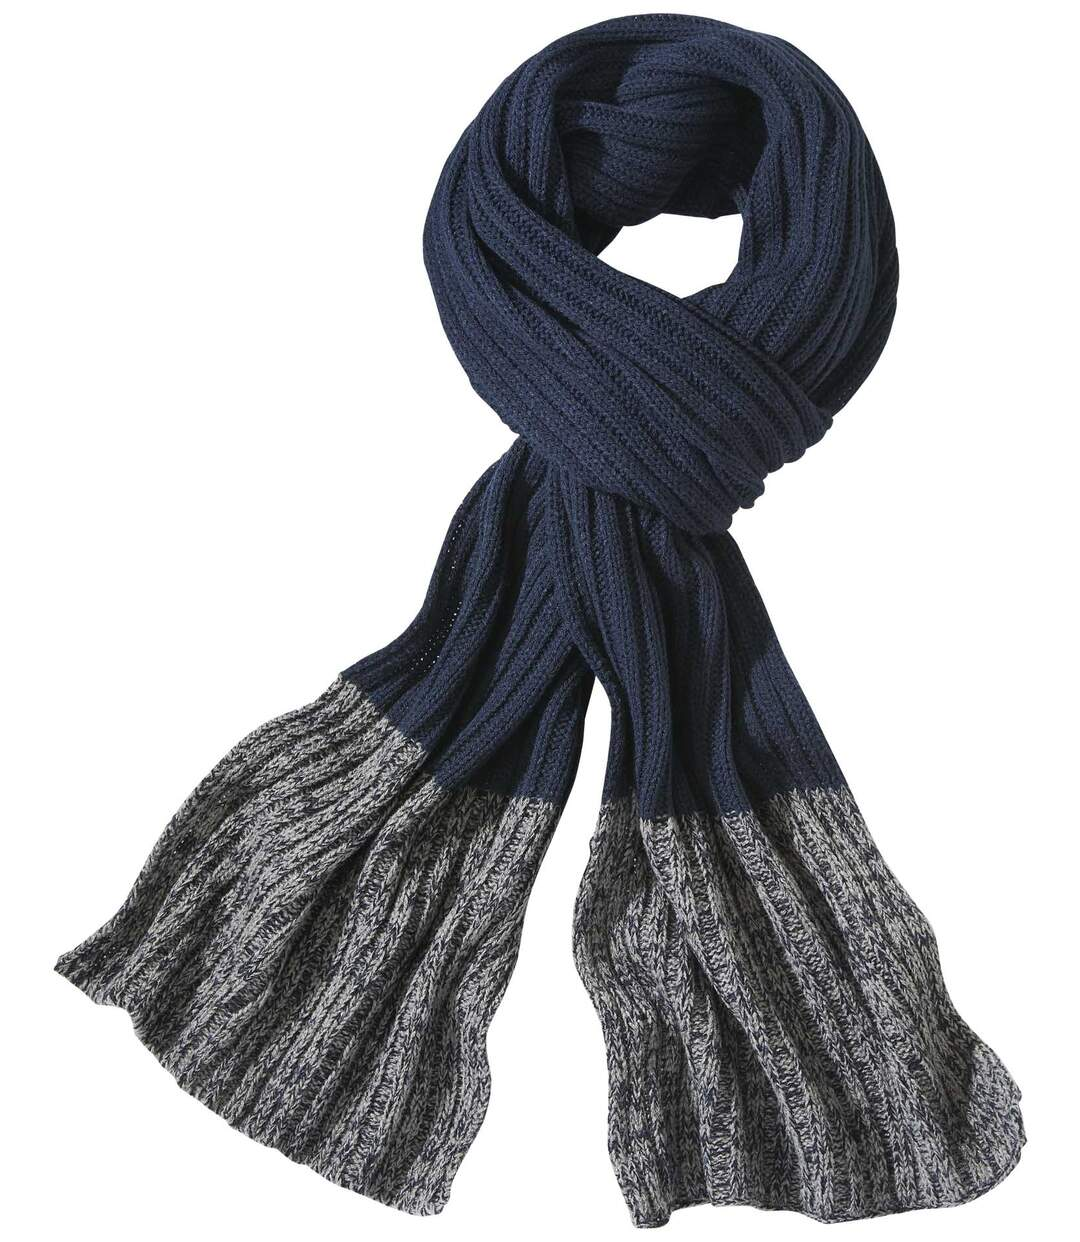 Men's Two-Tone Knitted Scarf - Navy Grey